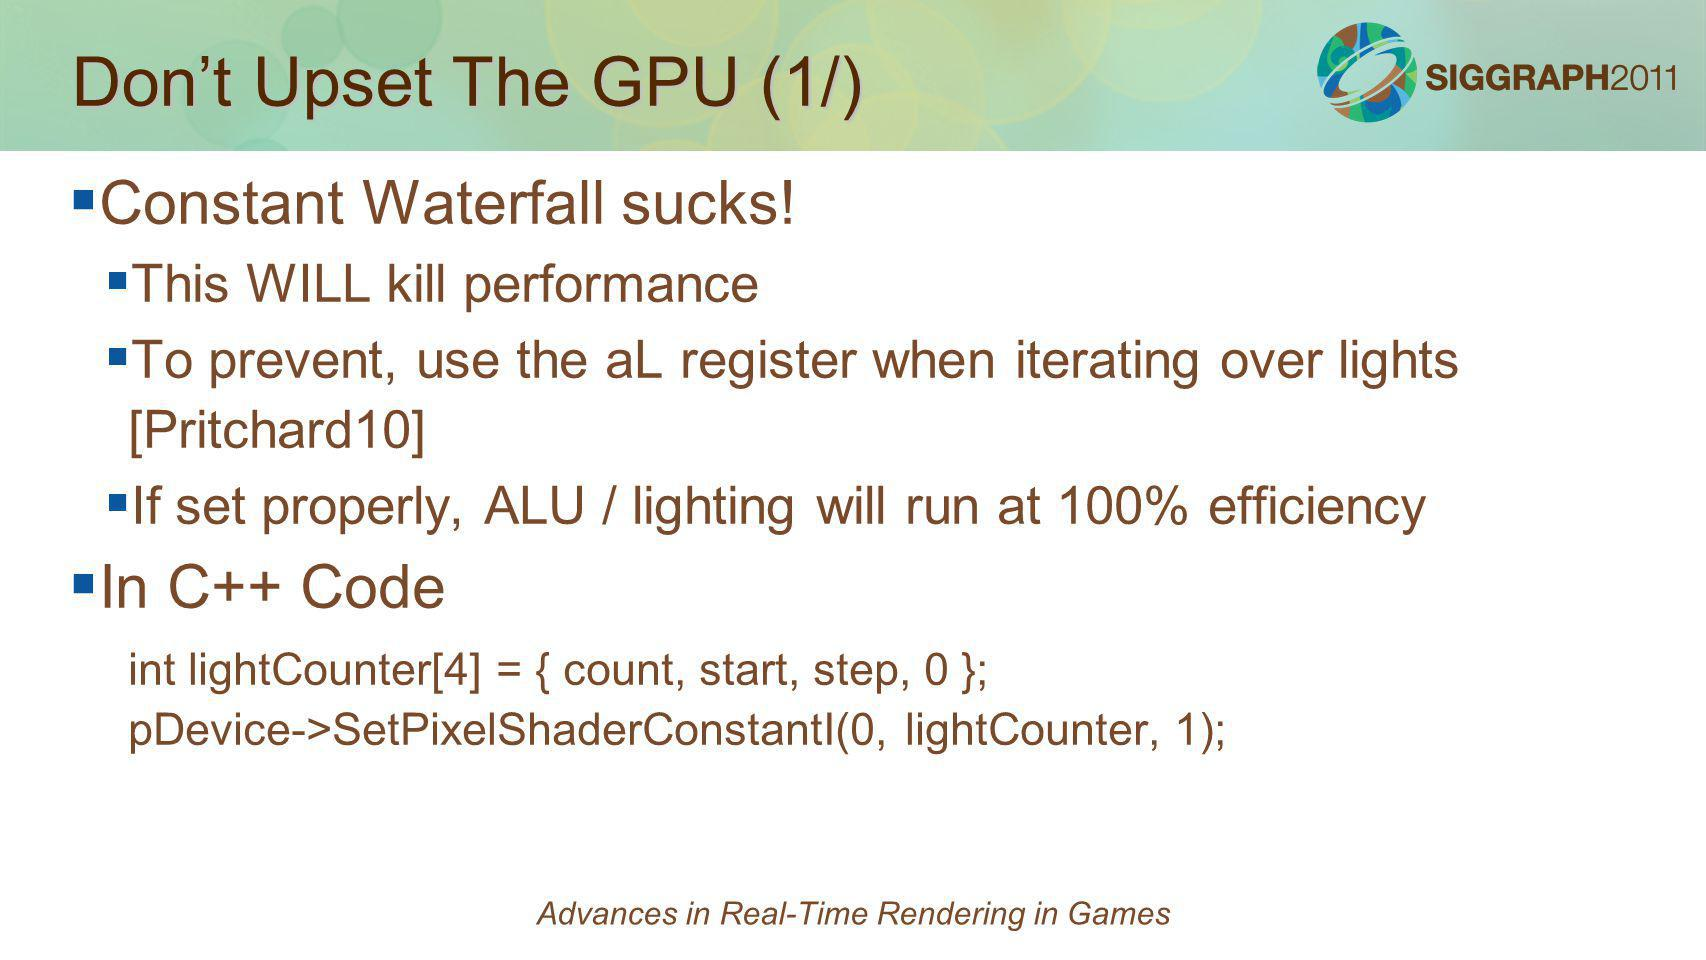 Dont Upset The GPU (1/) Constant Waterfall sucks! This WILL kill performance To prevent, use the aL register when iterating over lights [Pritchard10]